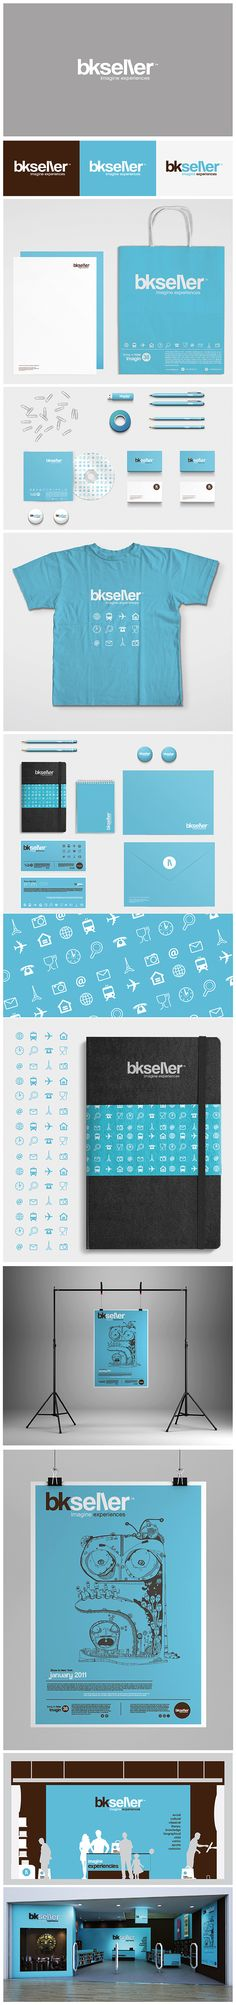 bkseller by Mister Onüff by misteronüff , via Behance | #stationary #corporate #design #corporatedesign #identity #branding #marketing < repinned by www.BlickeDeeler.de | Take a look at www.LogoGestaltung-Hamburg.de